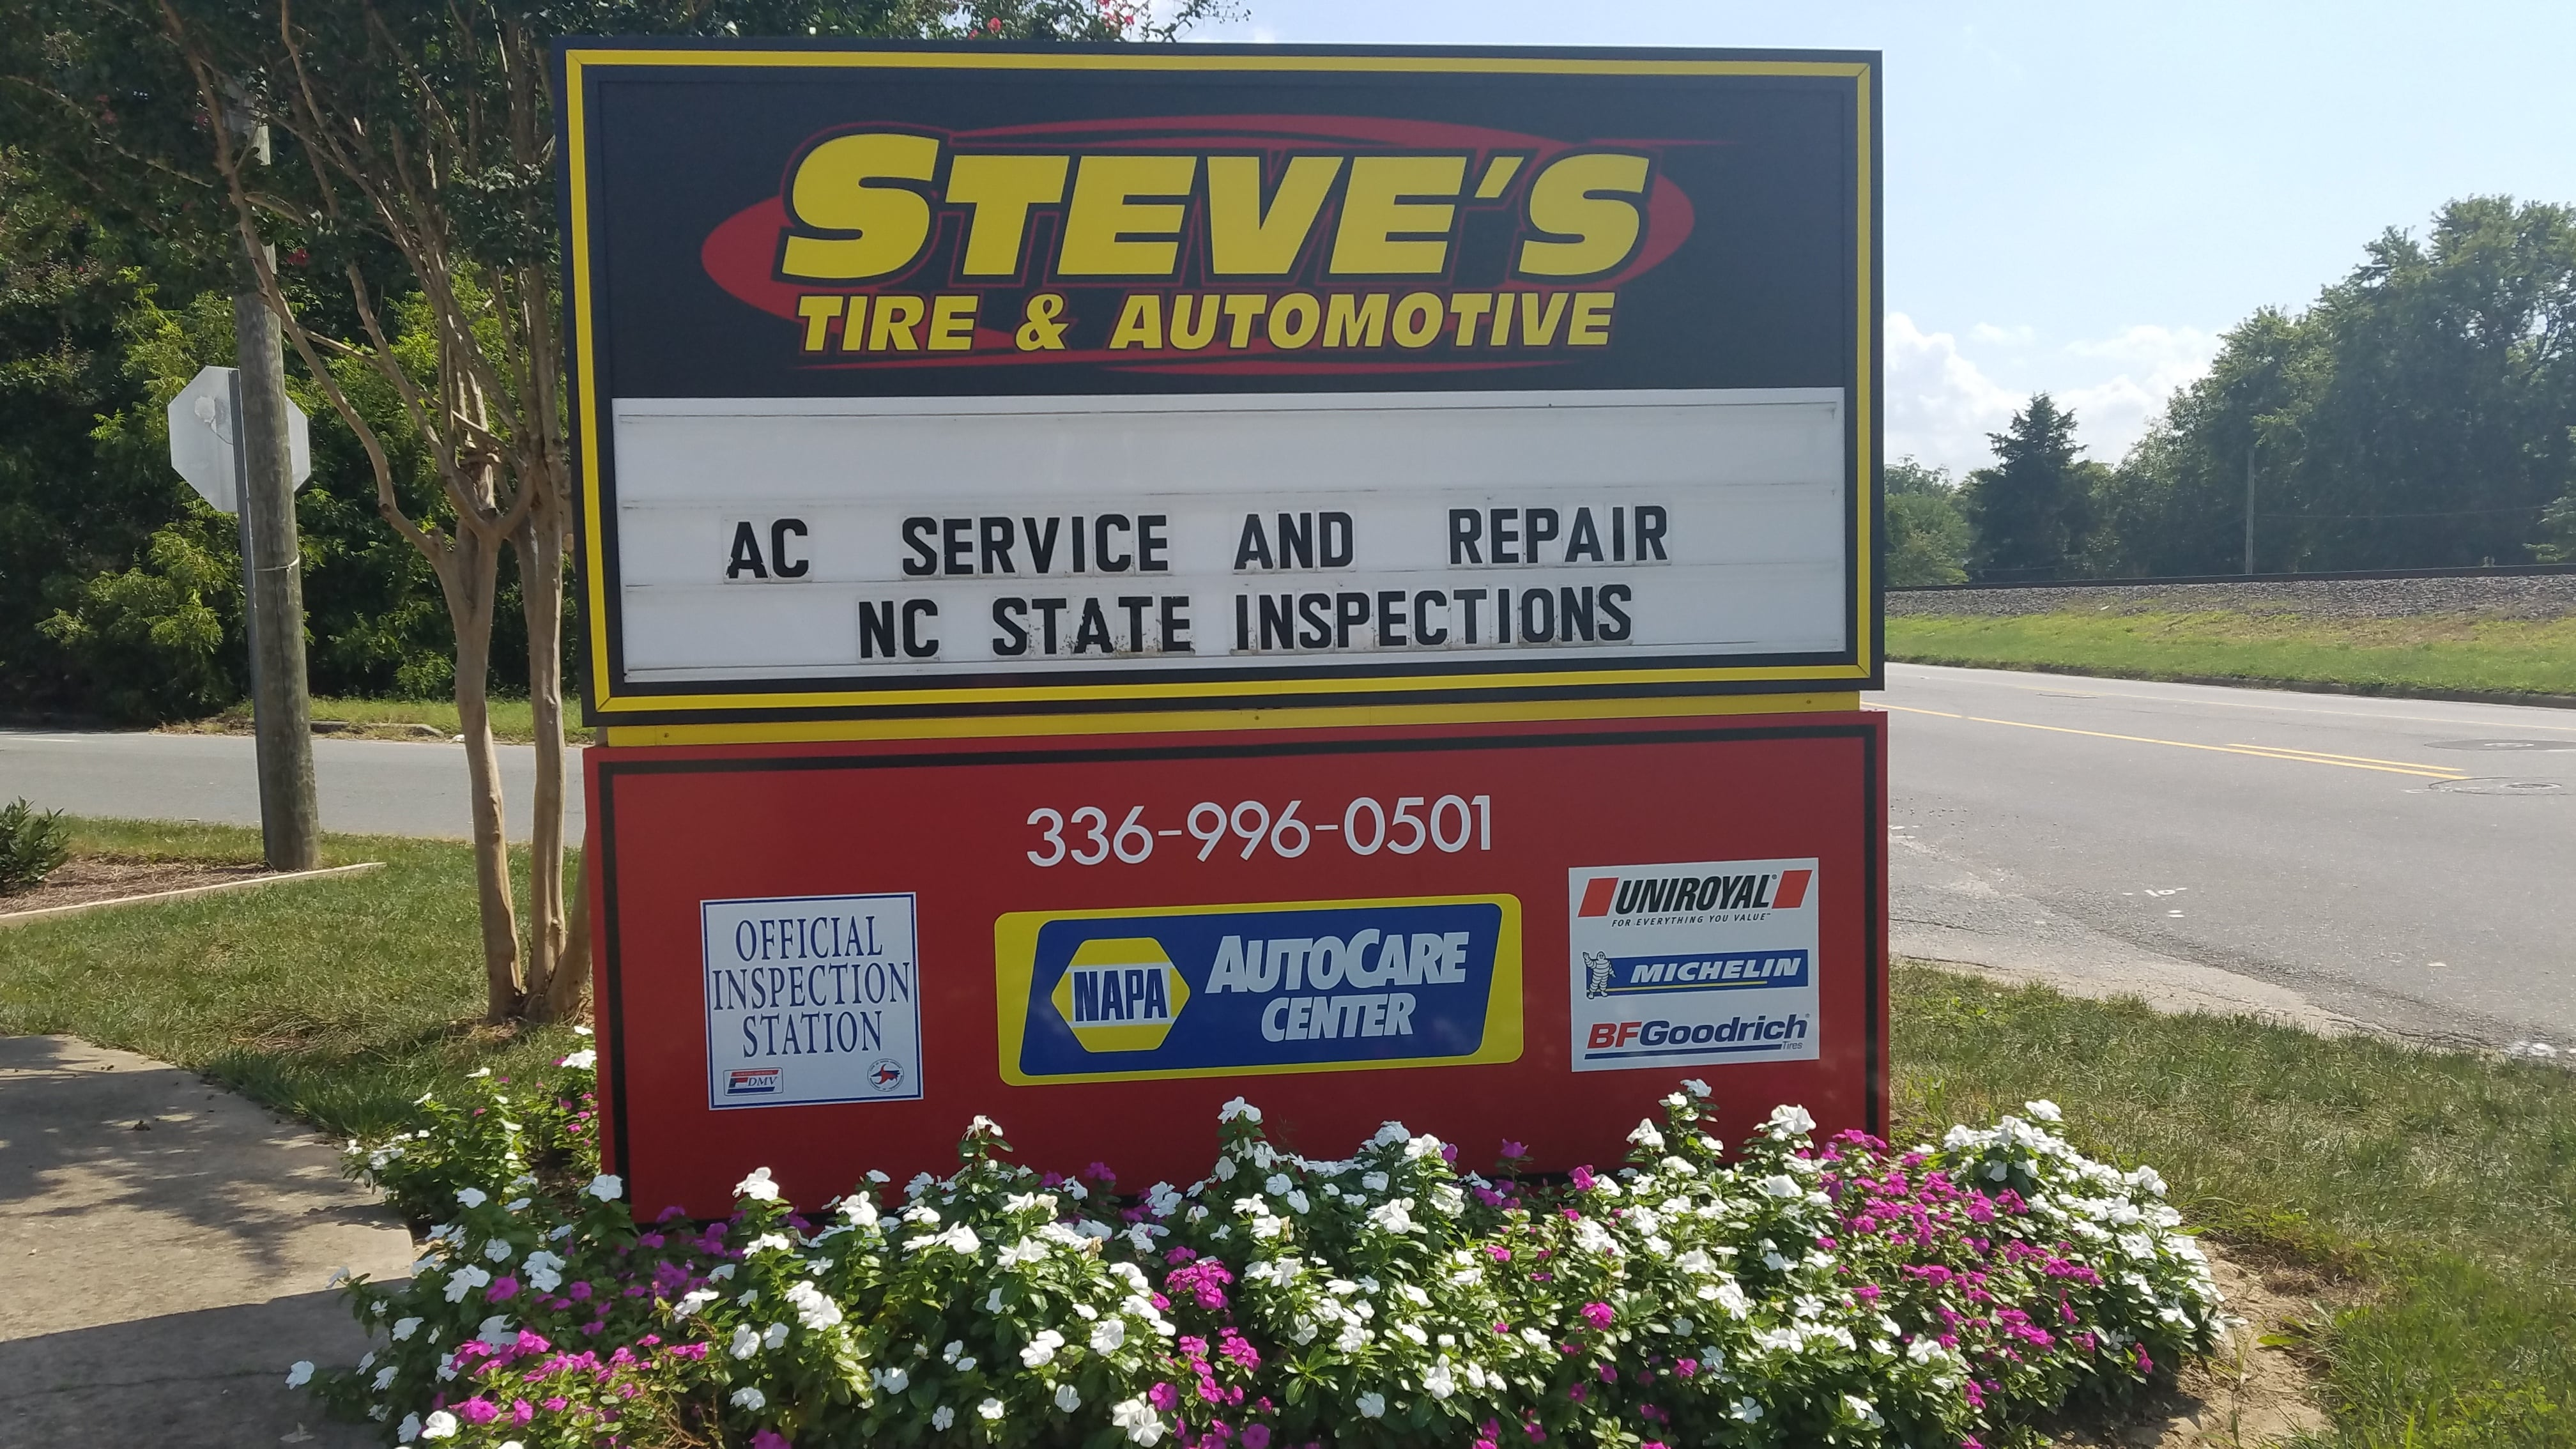 Steve's Tire & Automotive Sign